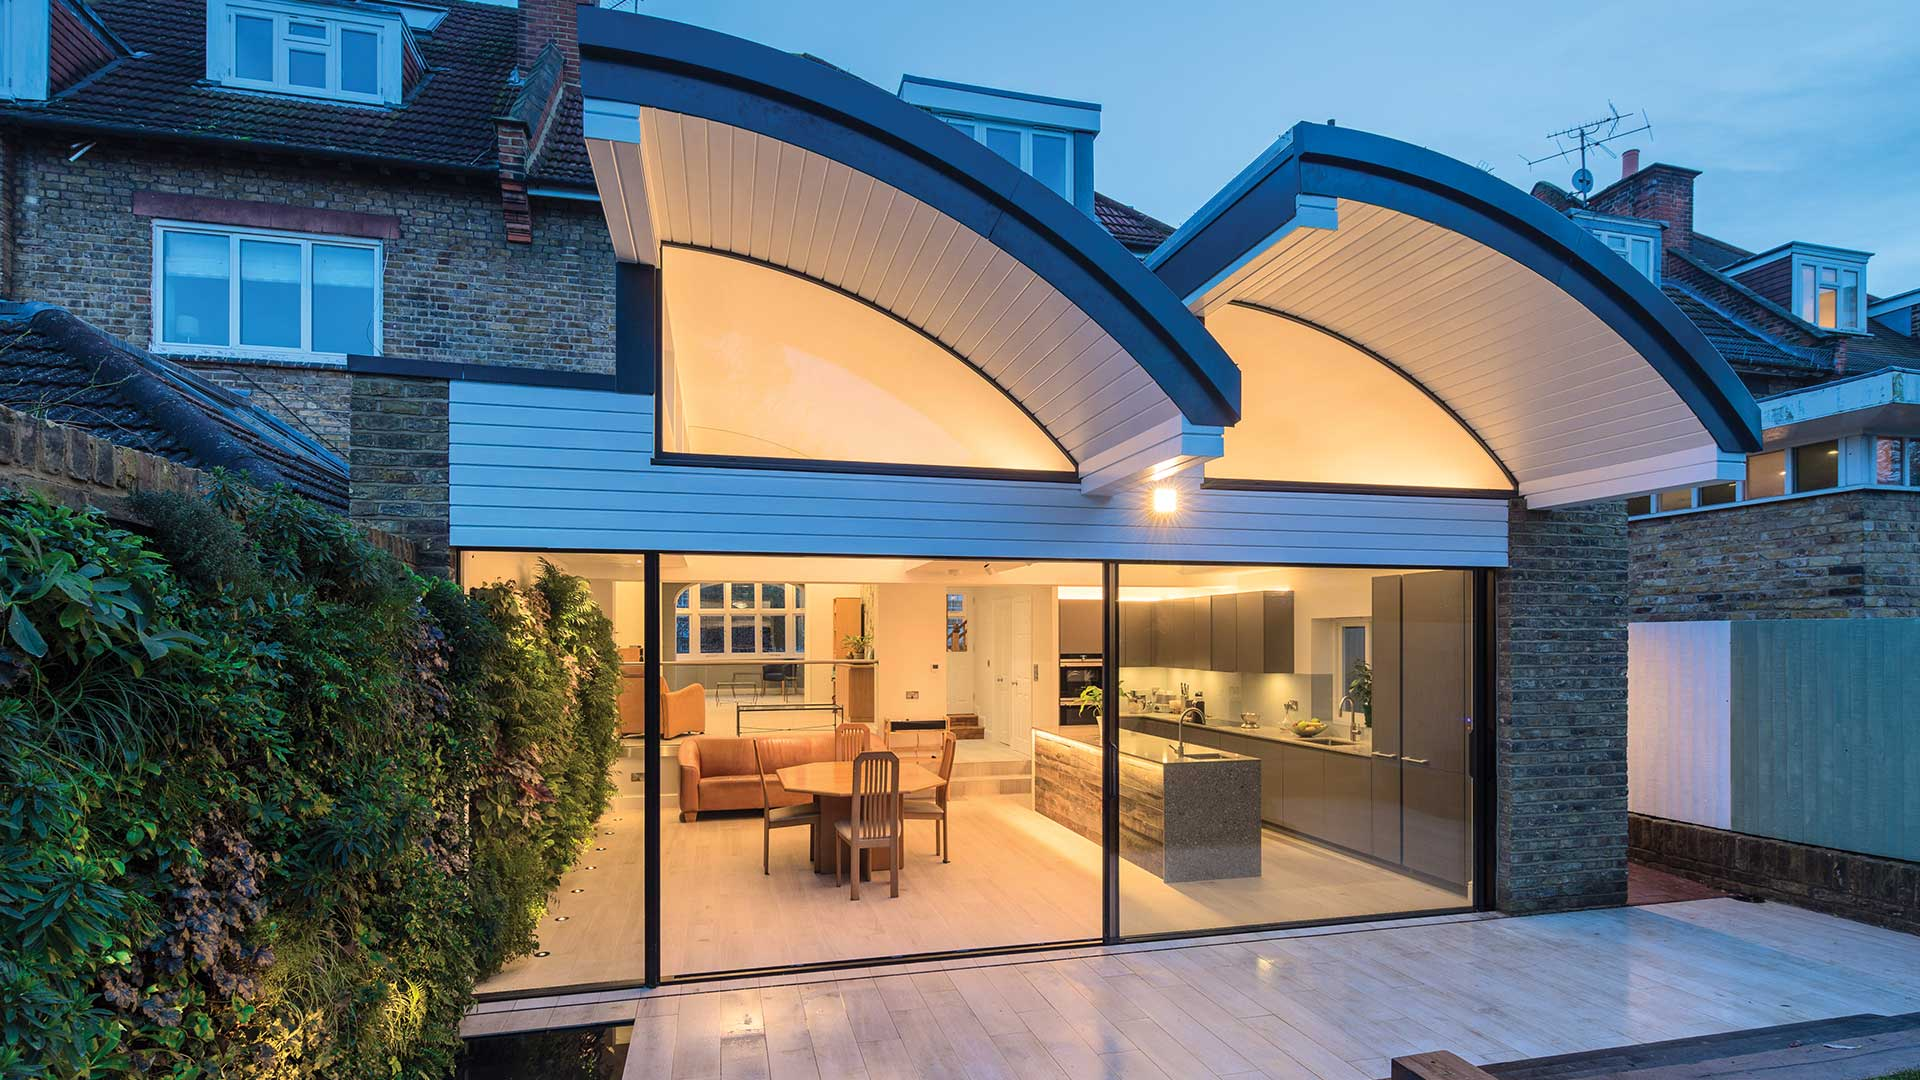 Architectural Lighting Design Residential Extension Kitchen Living Space Dual Vaulted Roof Living Green Wall Designers Nulty